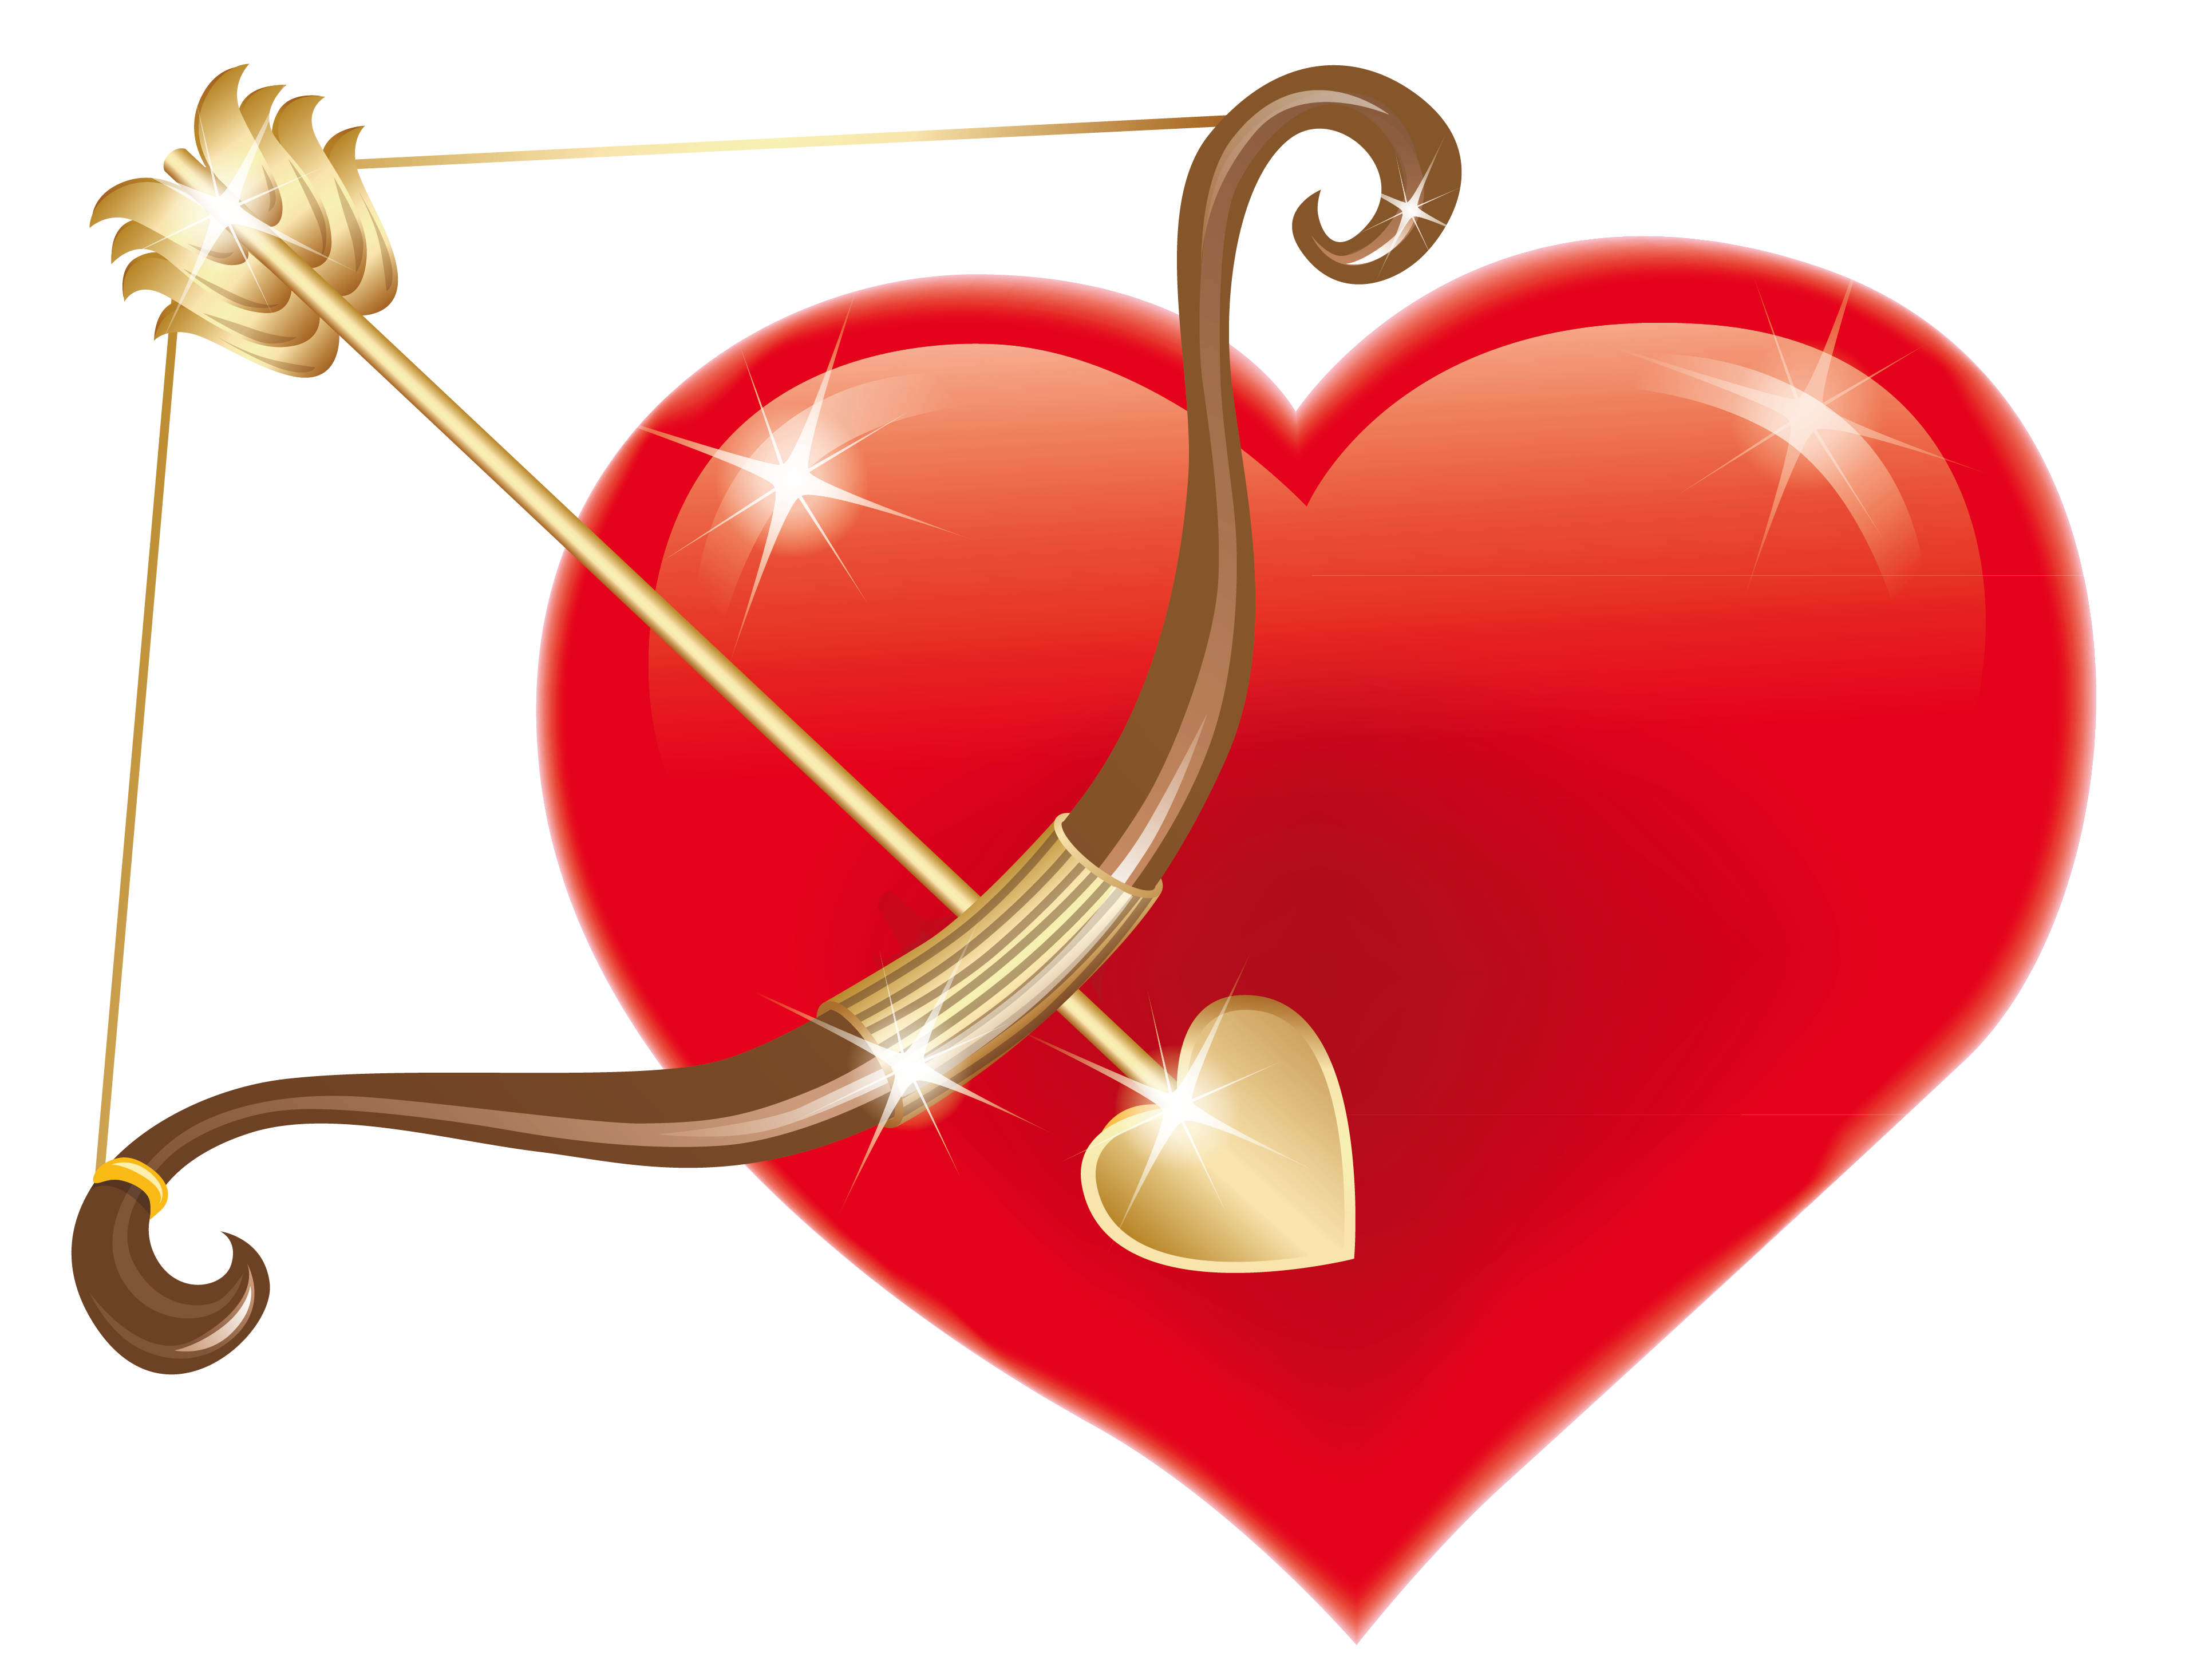 Valentine decorations png. Red heart with cupid